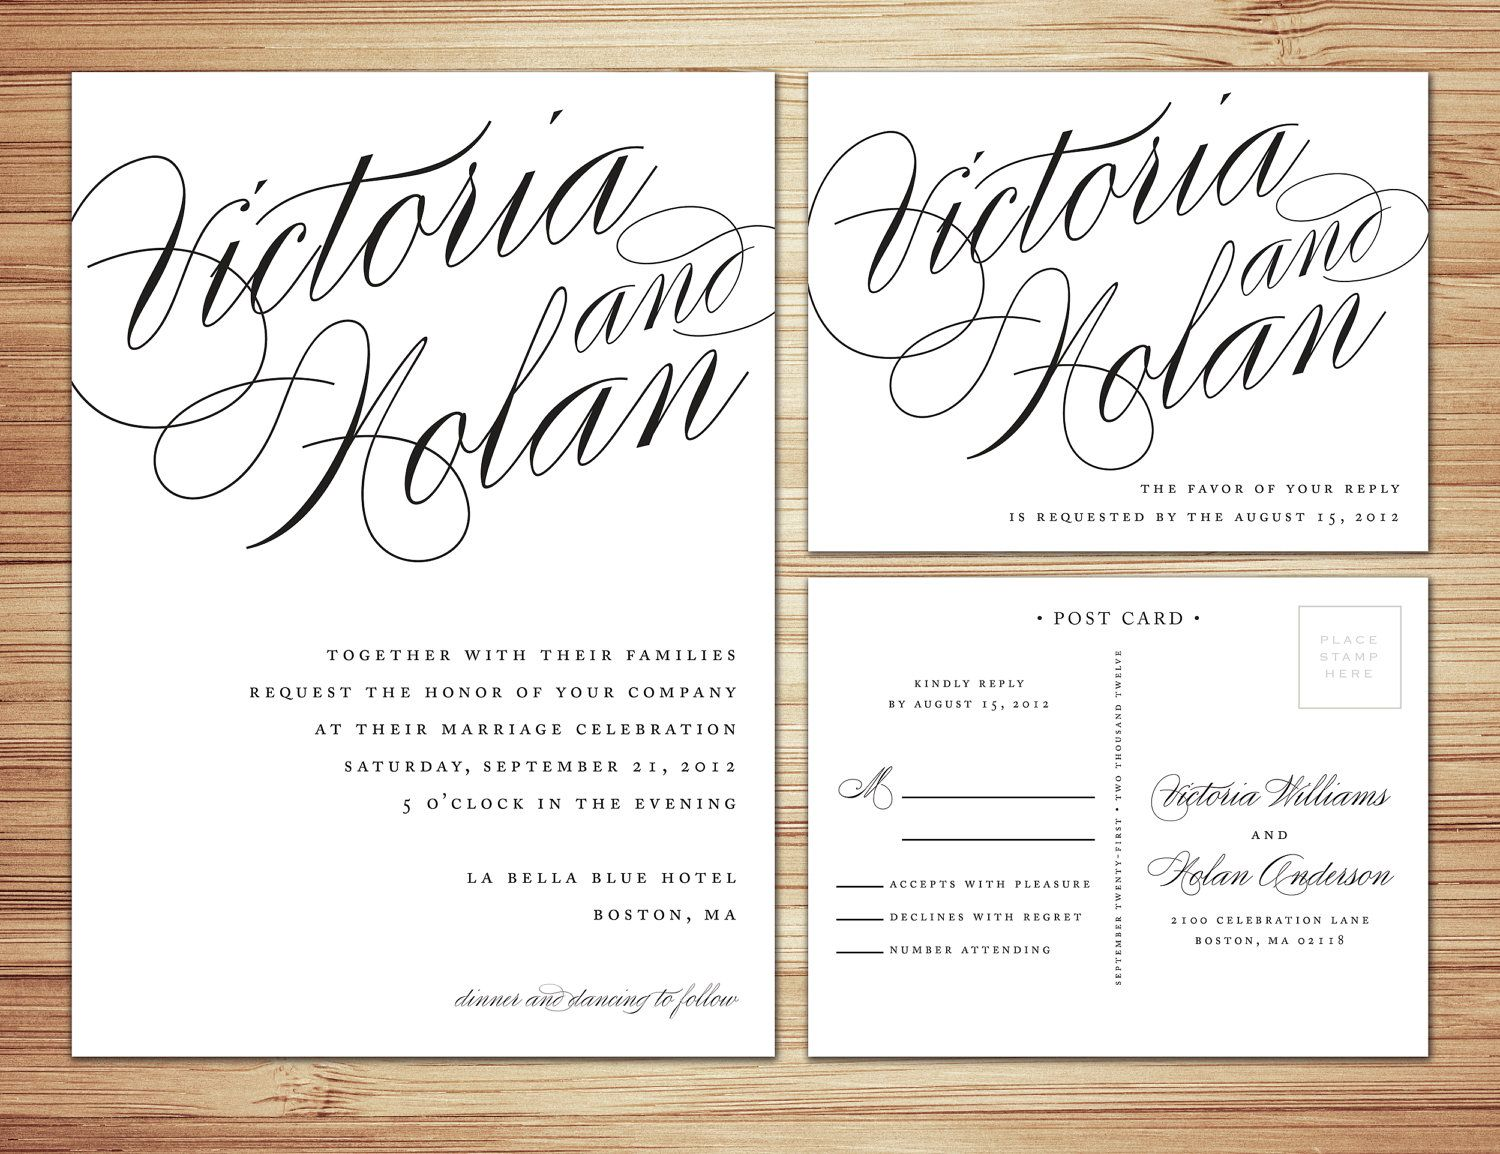 Wedding Invitations With Rsvp Postcards: Calligraphy Wedding Invitation & RSVP. I Love The Wording